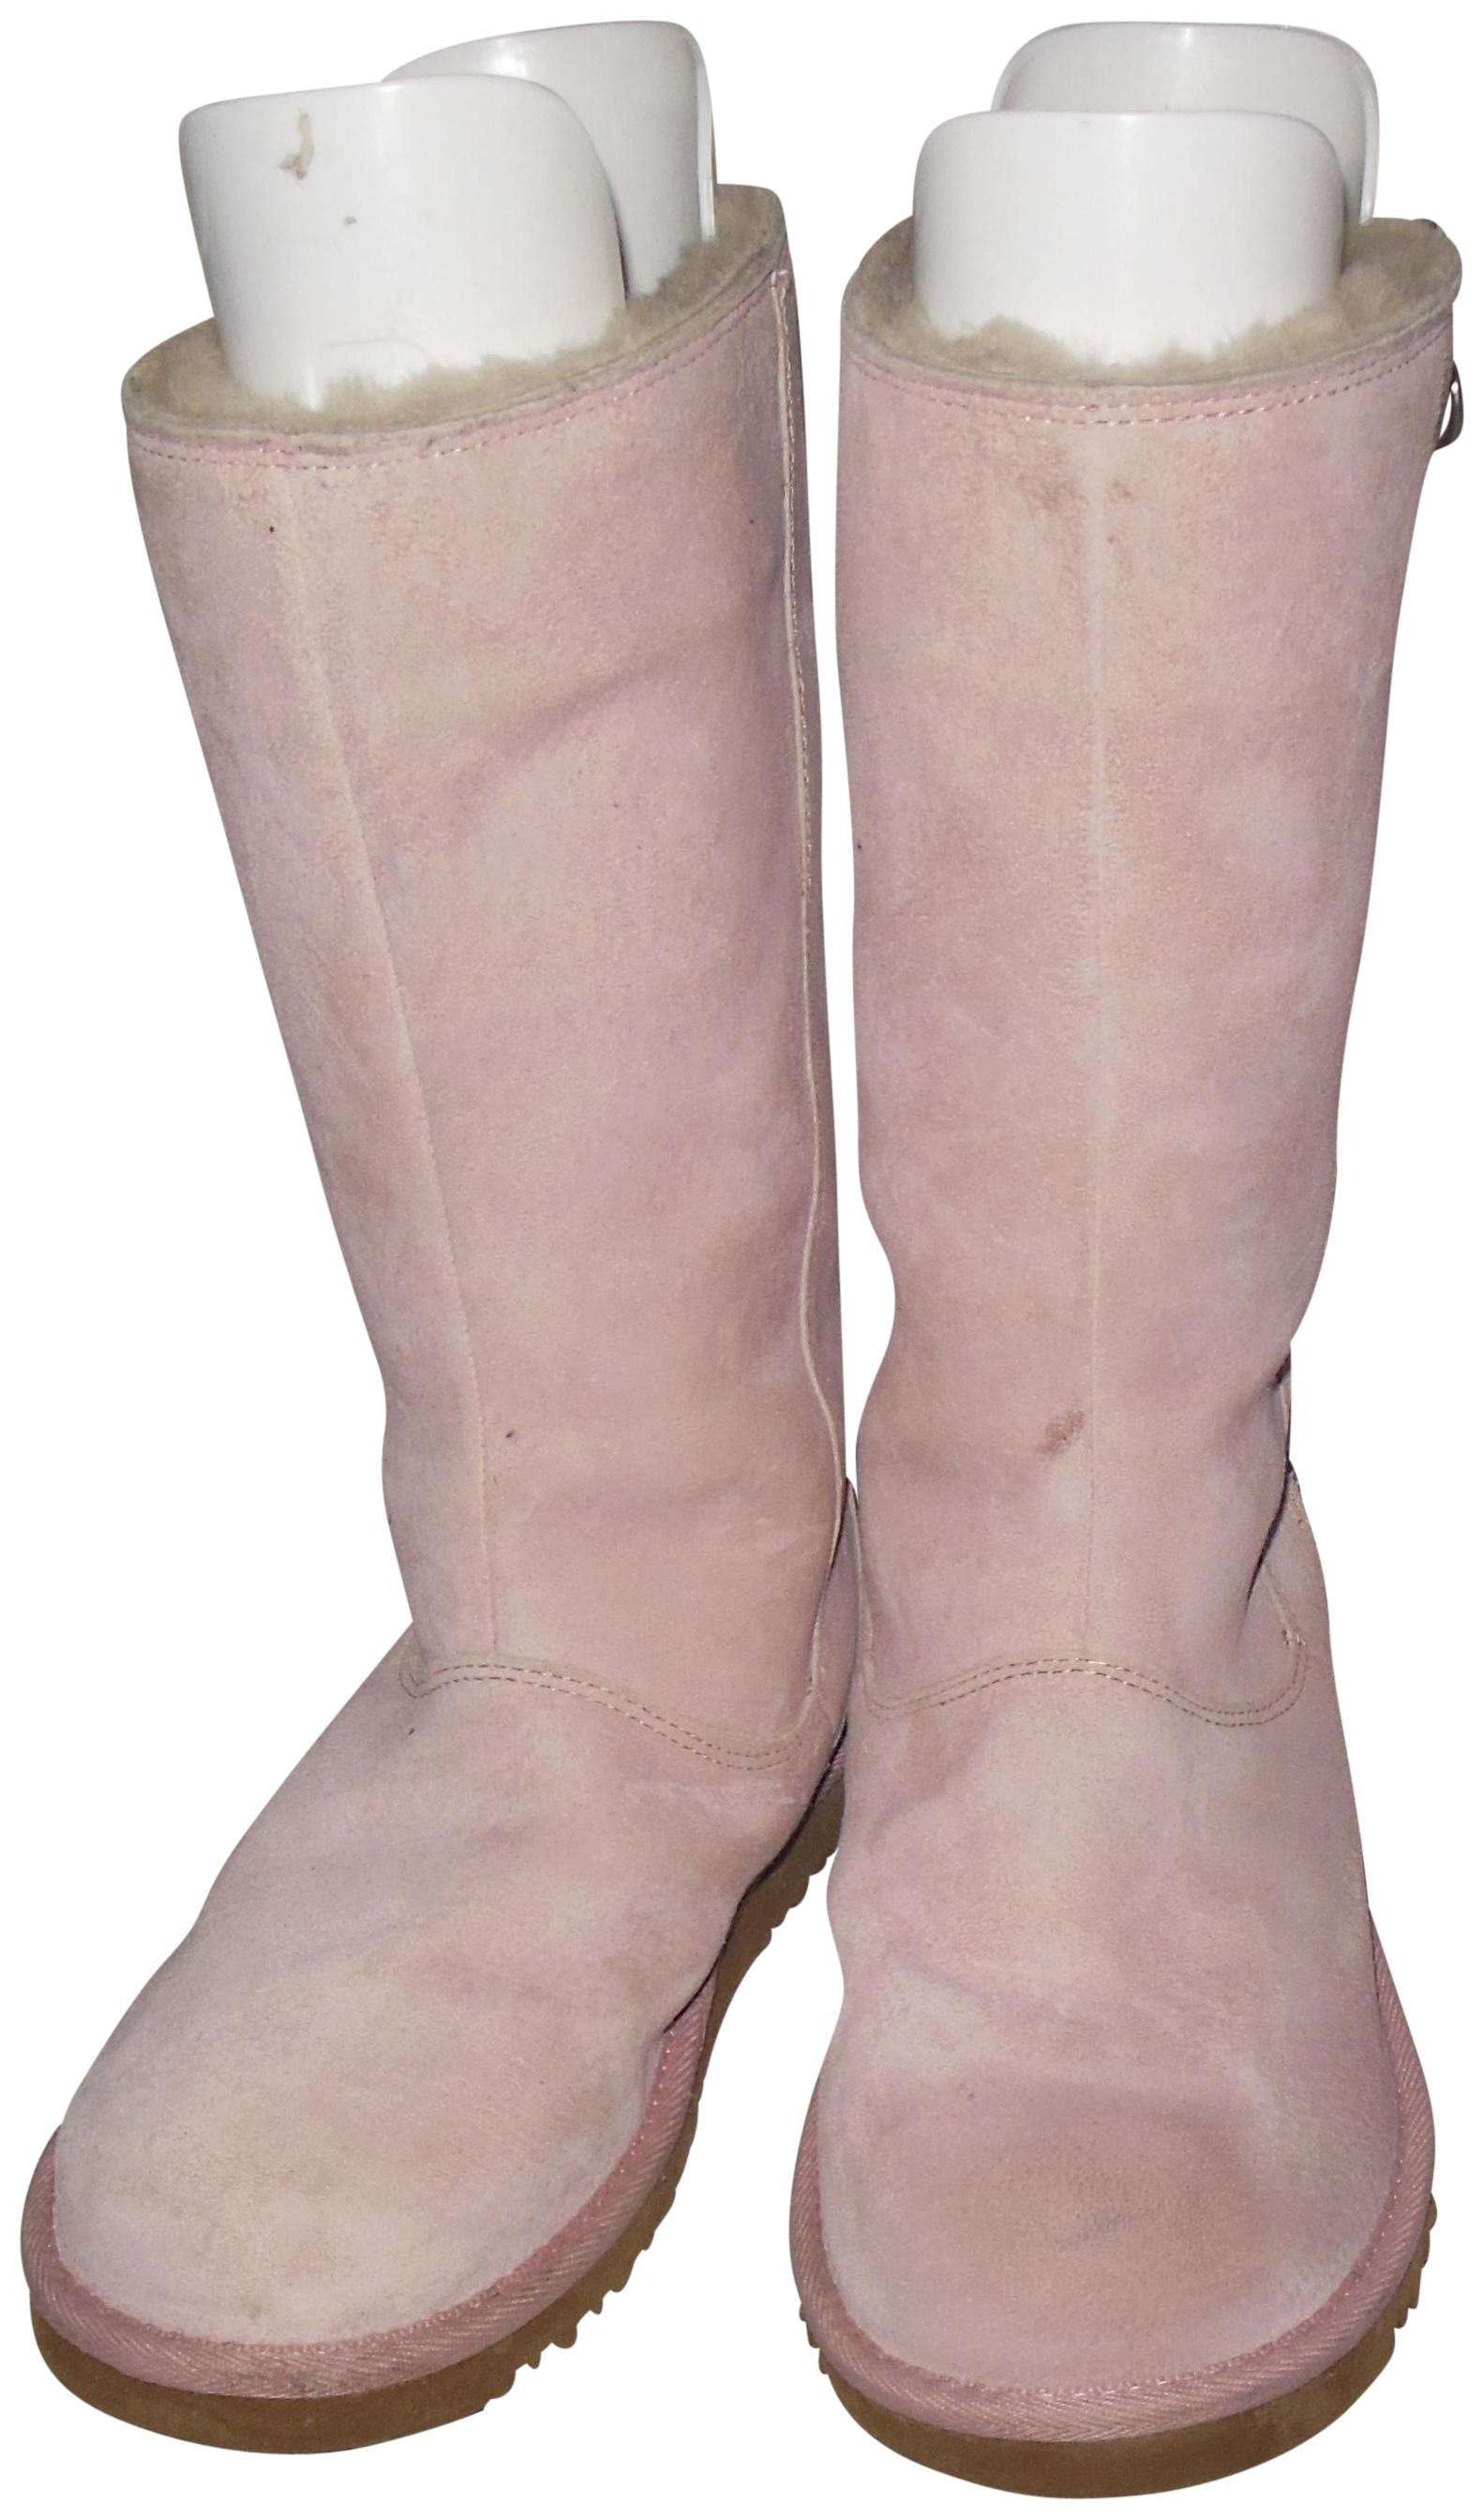 0c6598ed67a clearance ugg light pink boots 7e860 5445a